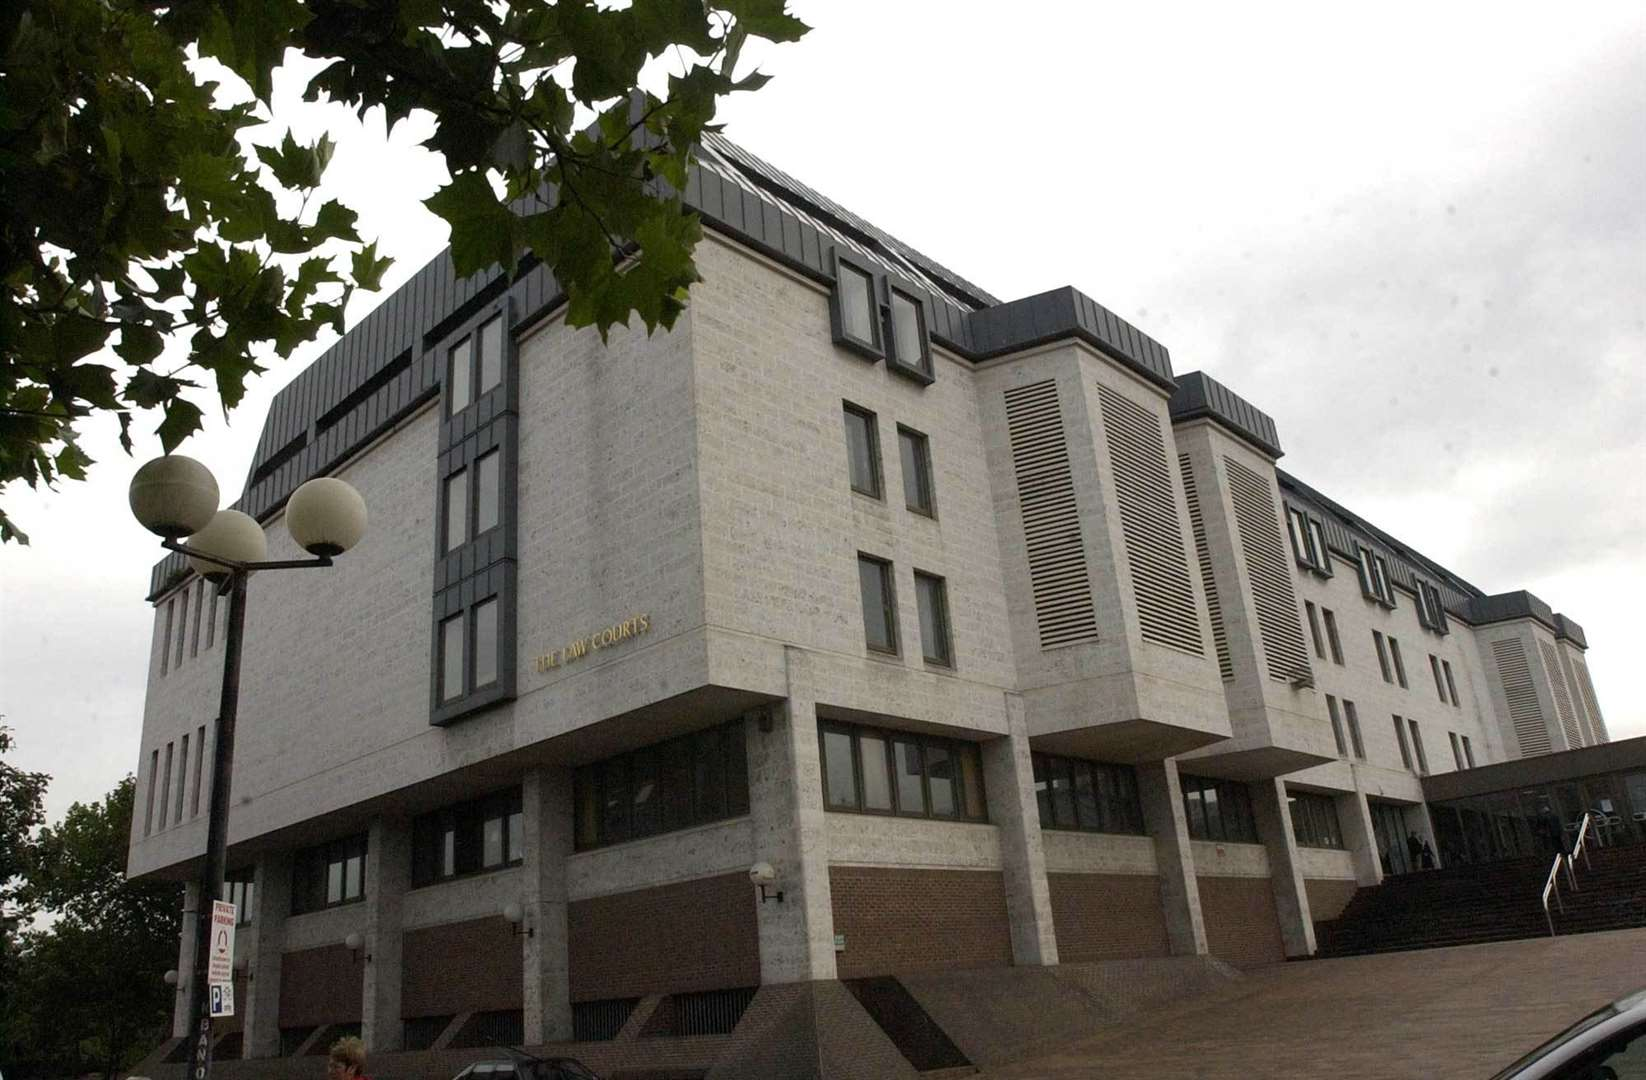 Spooner was jailed for 14 months after the hearing at Maidstone Crown Court